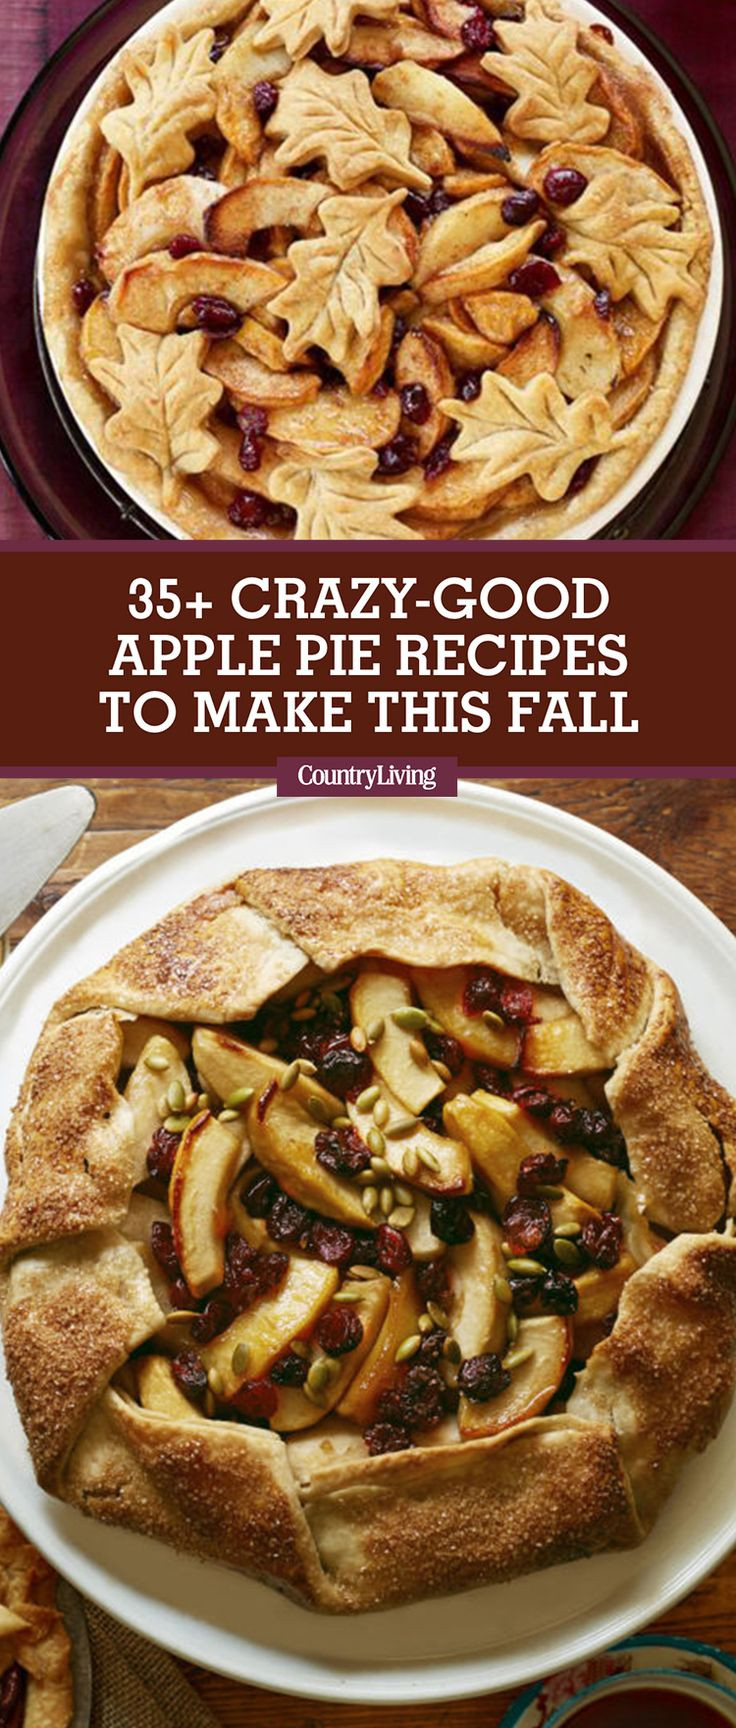 Fall Pie Recipes  2994 best Recipes for the Ultimate Fall images on